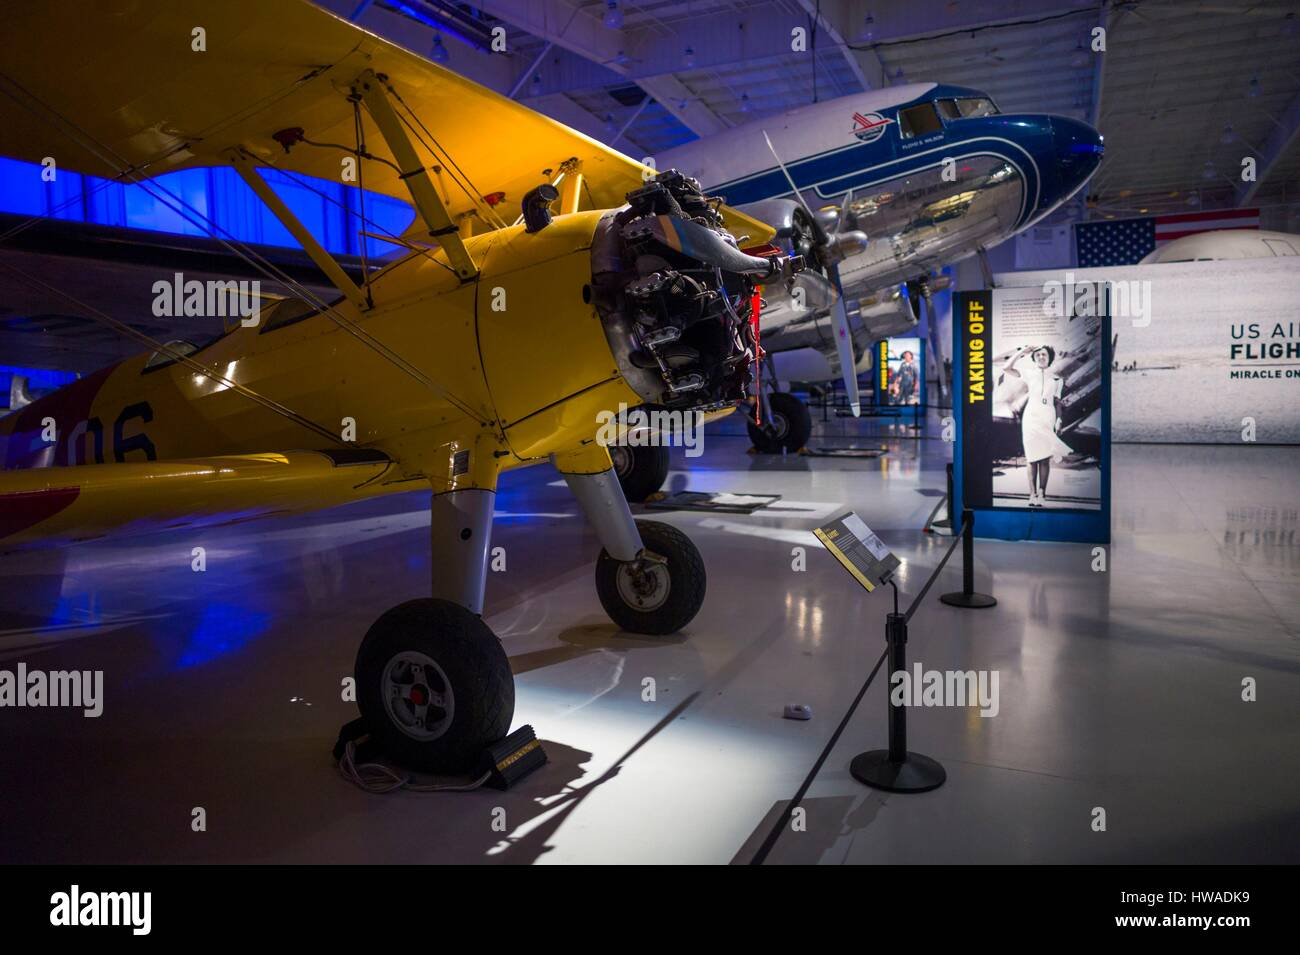 United States, North Carolina, Charlotte, Carolina's Aviation Museum, interior - Stock Image